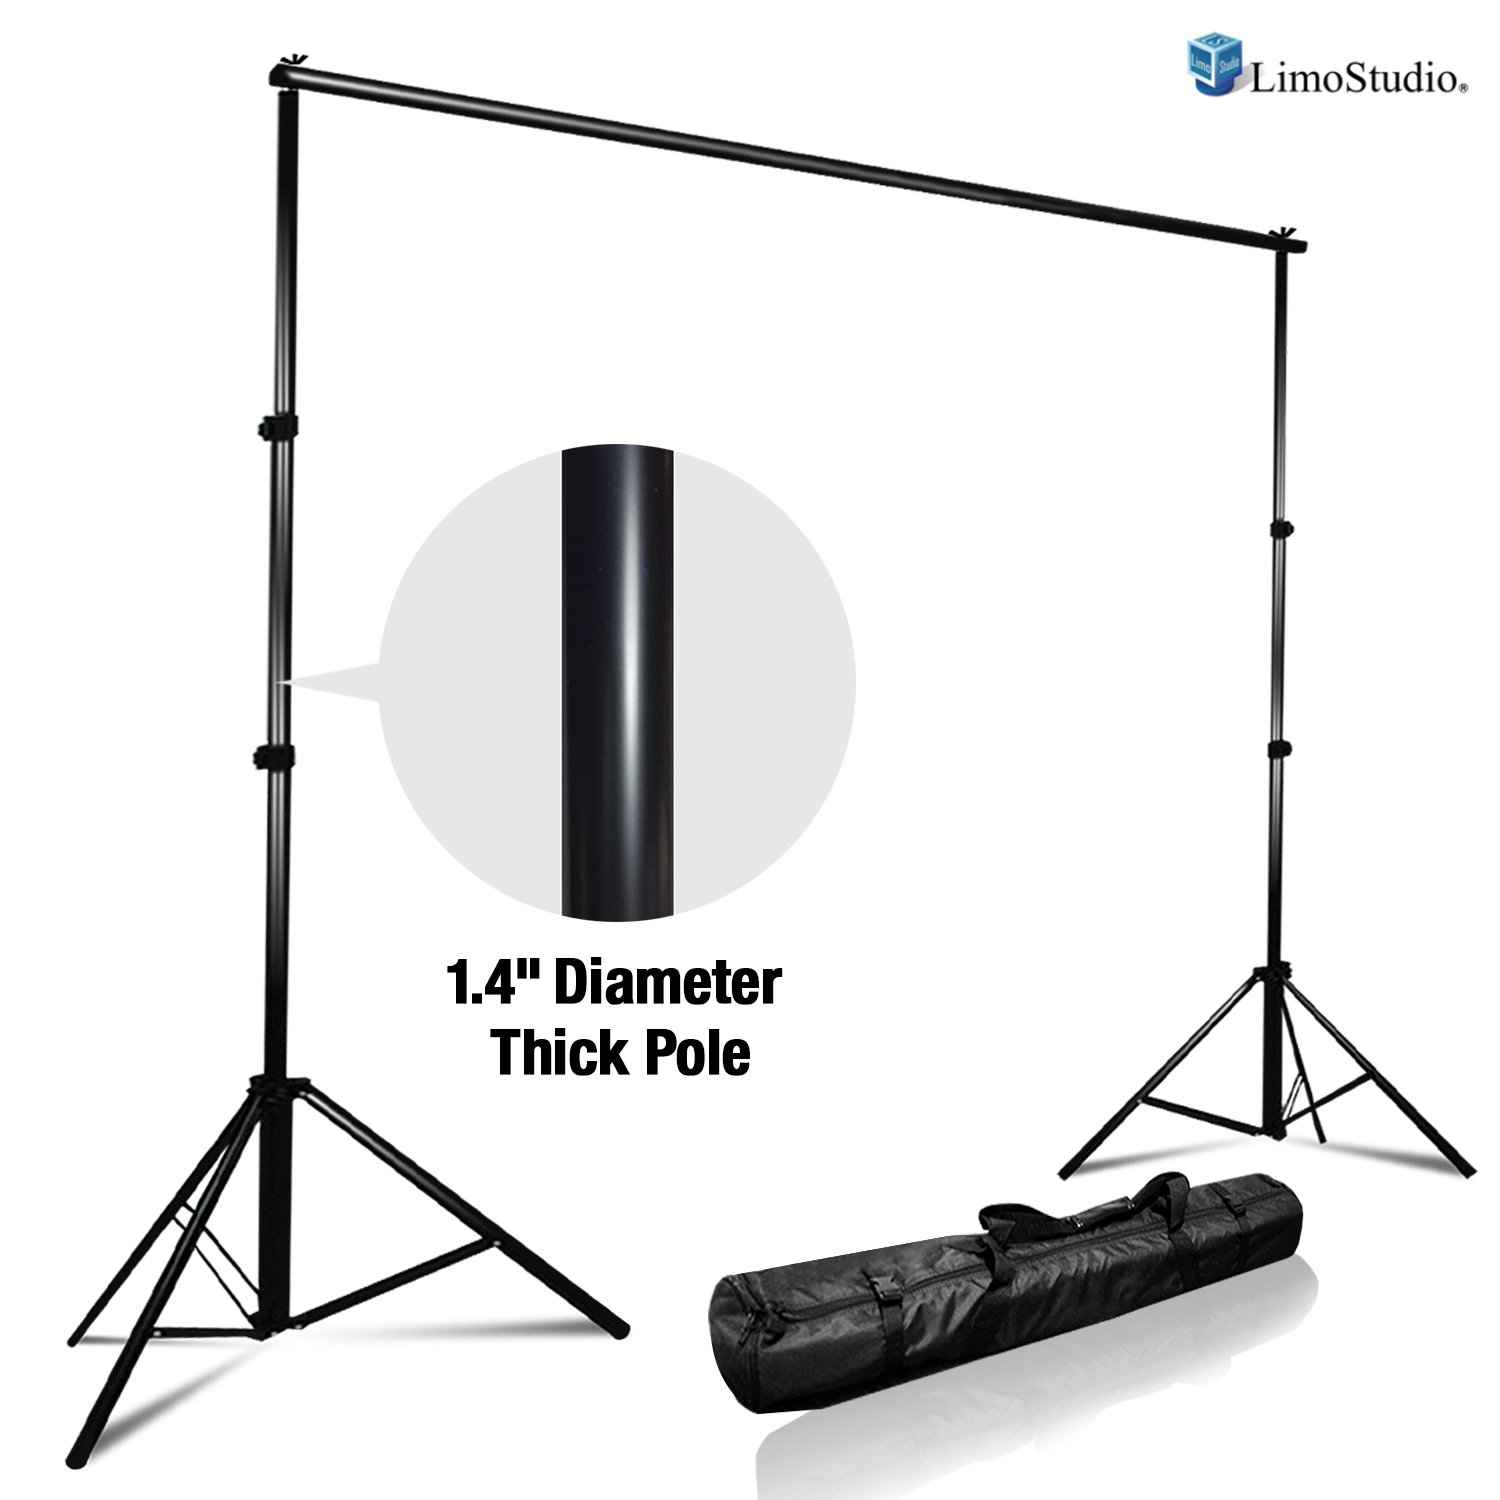 LimoStudio Photo Video Studio Adjustable Muslin Background Backdrop Support System Stand & Cross Bar, AGG1111 by LimoStudio